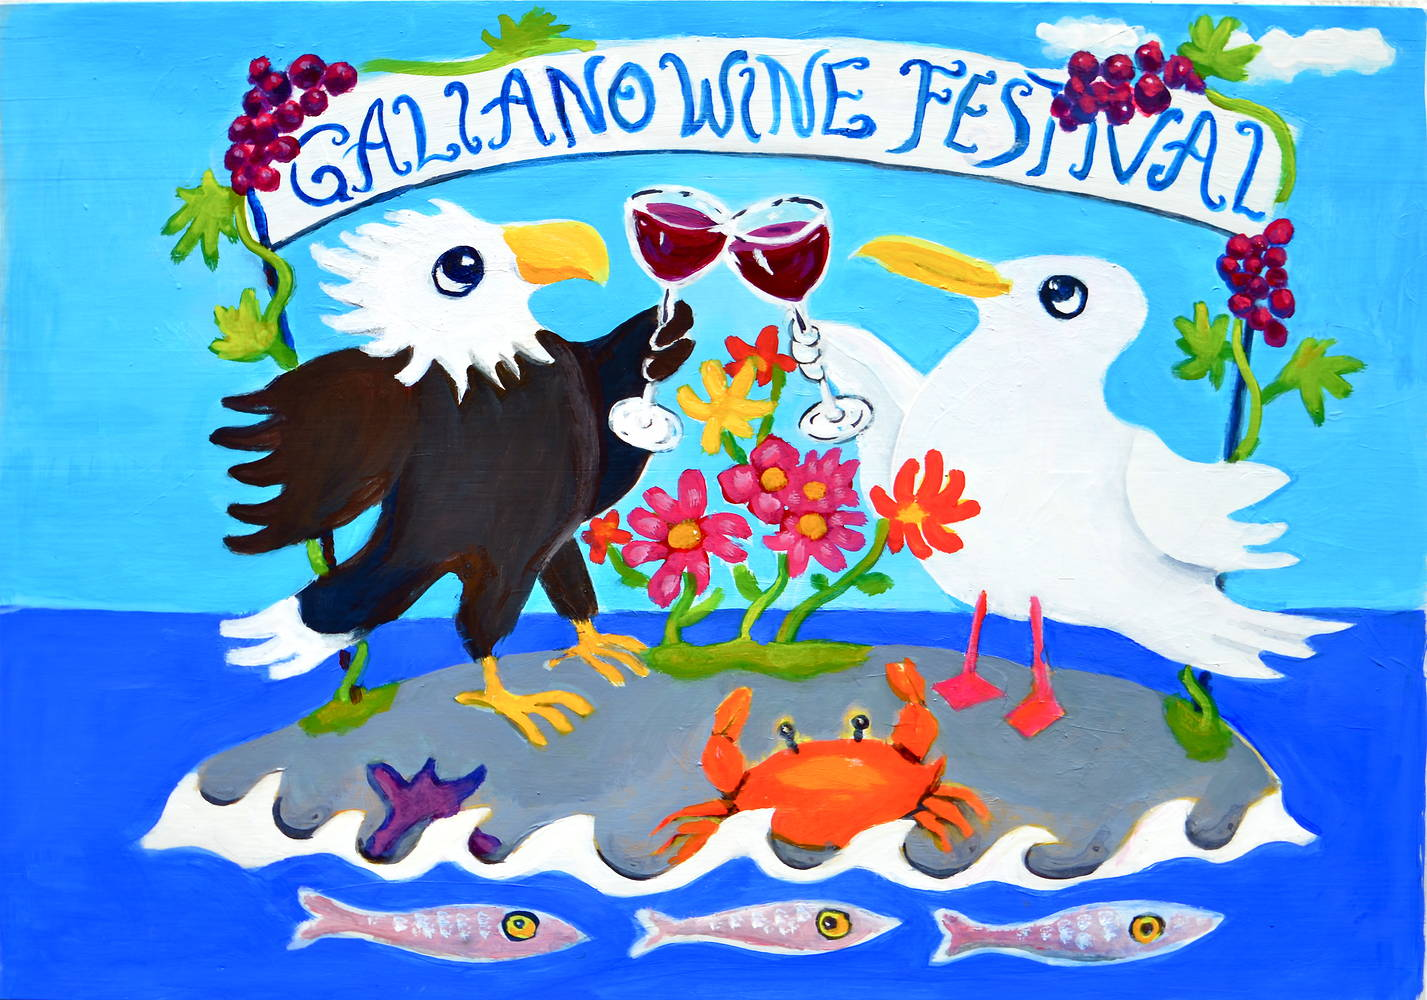 winefest by Penny Prior